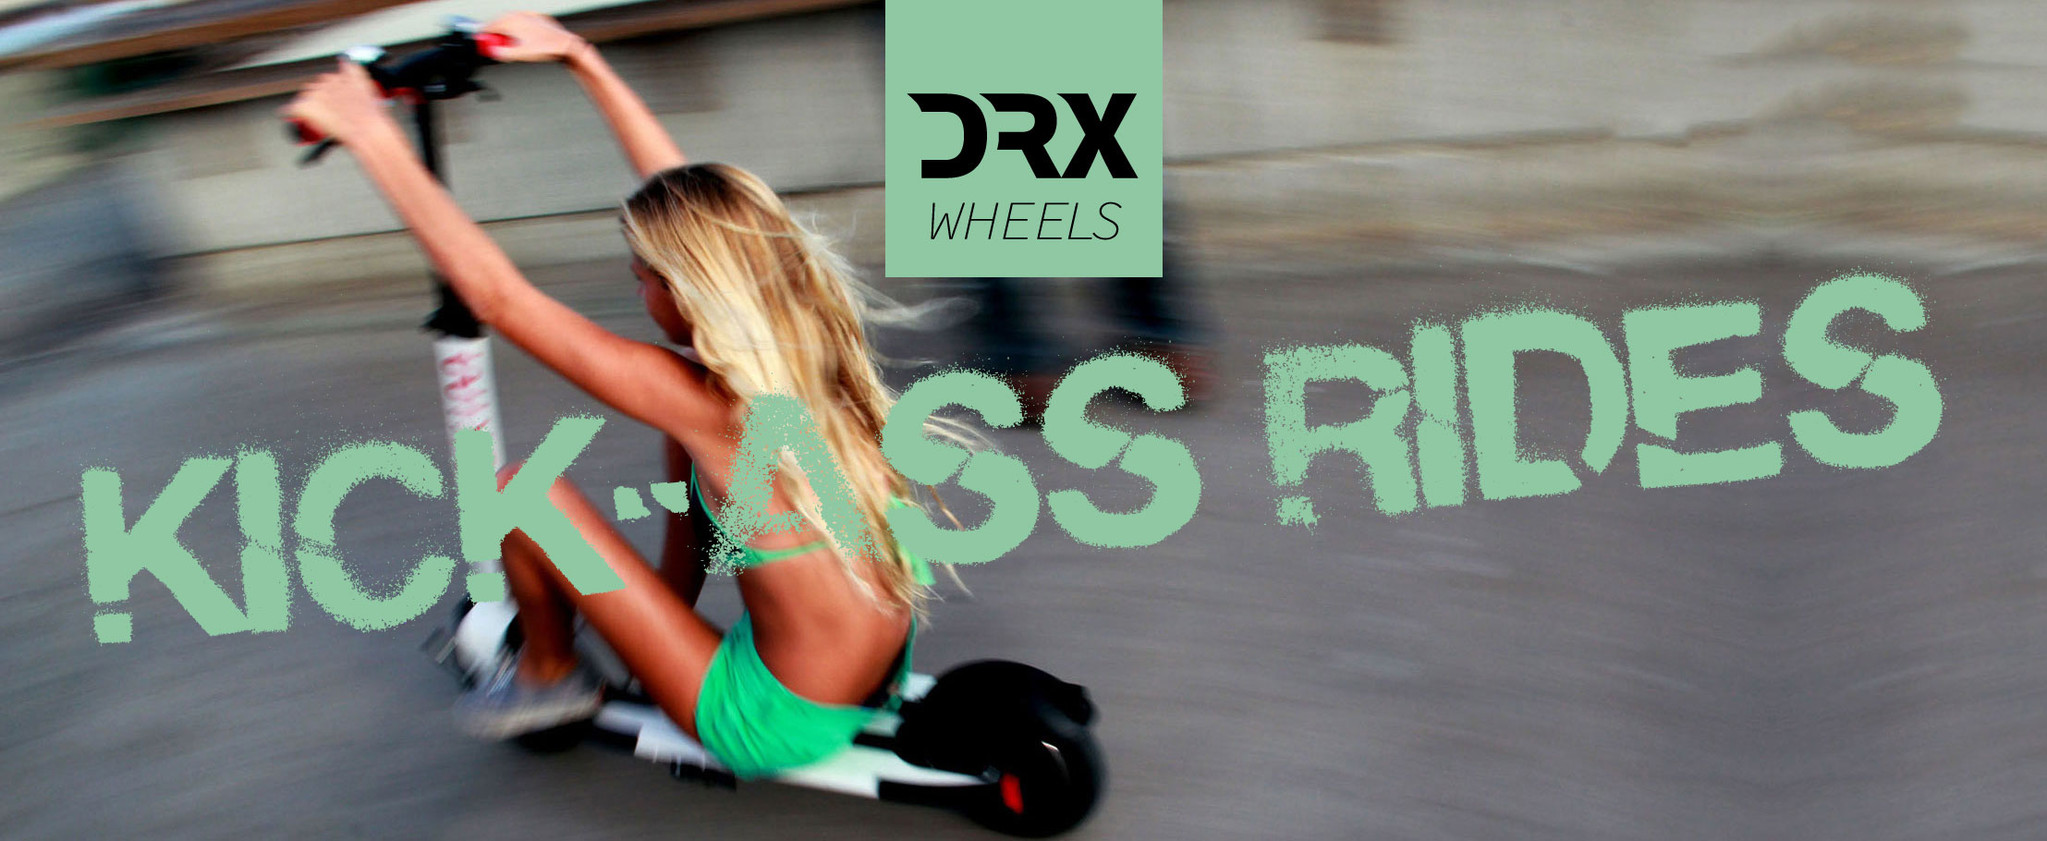 DRX wheels | kick-ass rides!